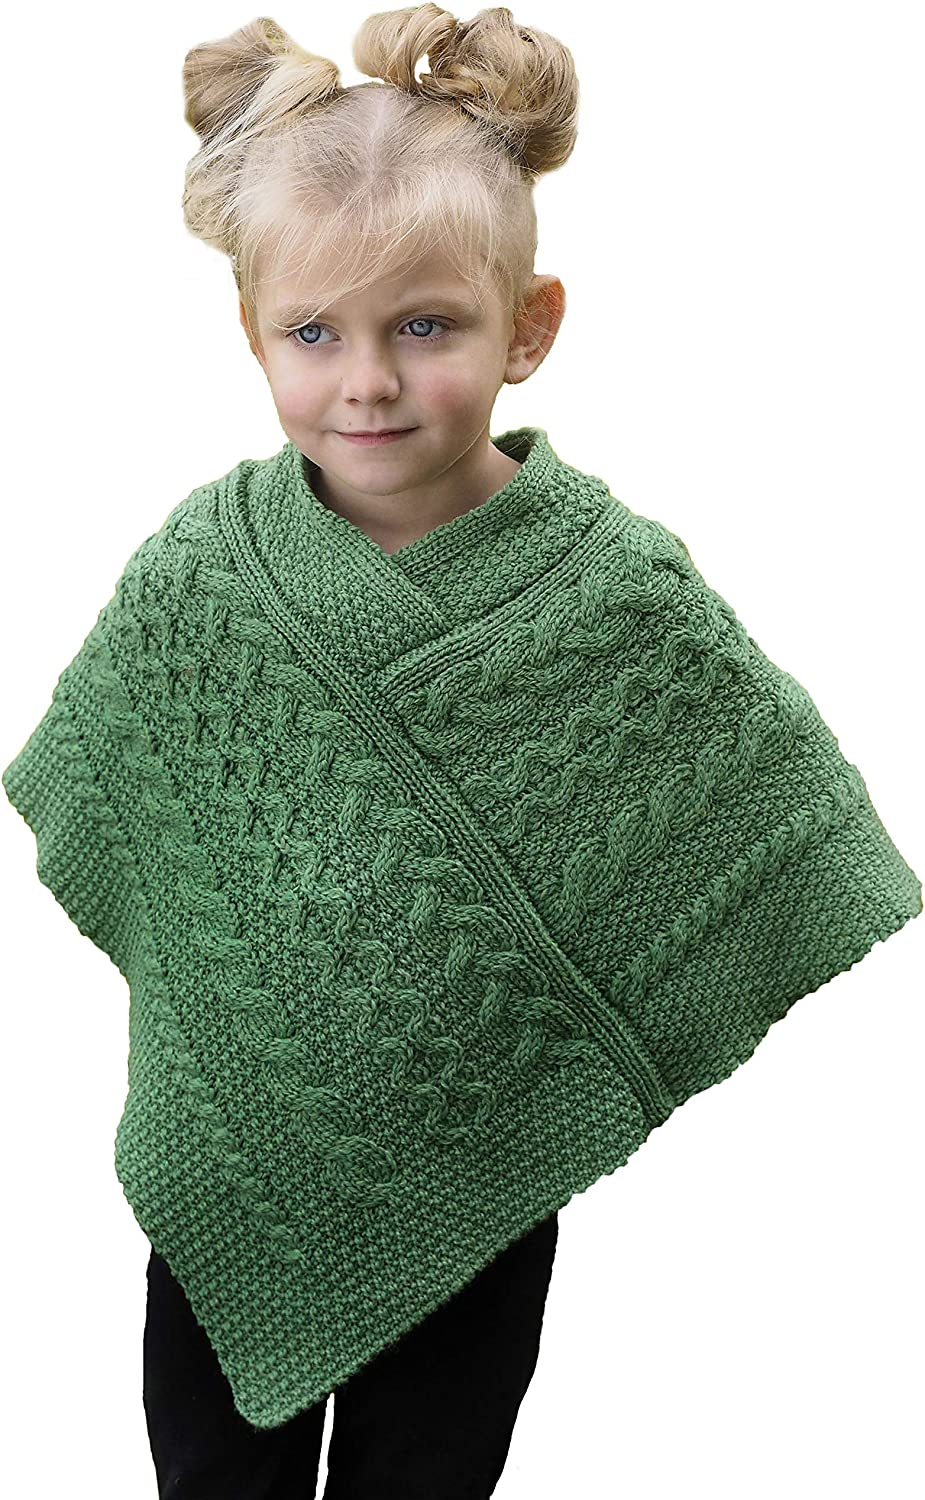 Aran New life Crafts Kid's Irish Cable Knitted Cape Poncho Mer Wholesale 100% Soft